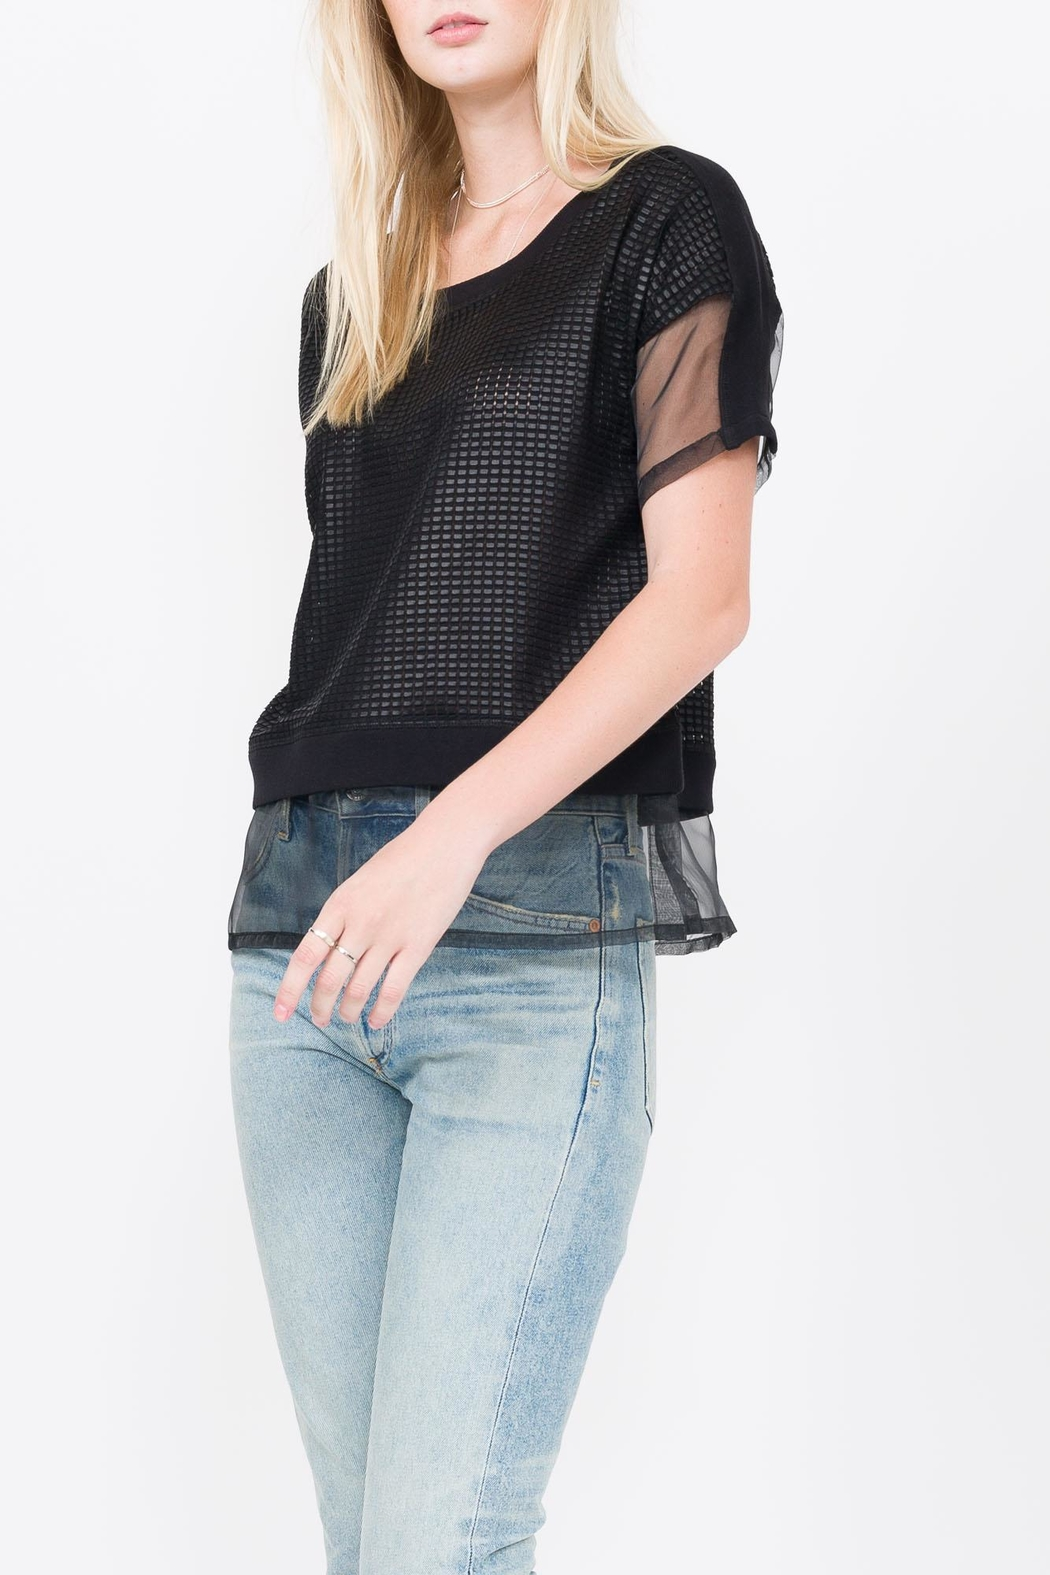 QUINN Lorraine Top - Front Cropped Image